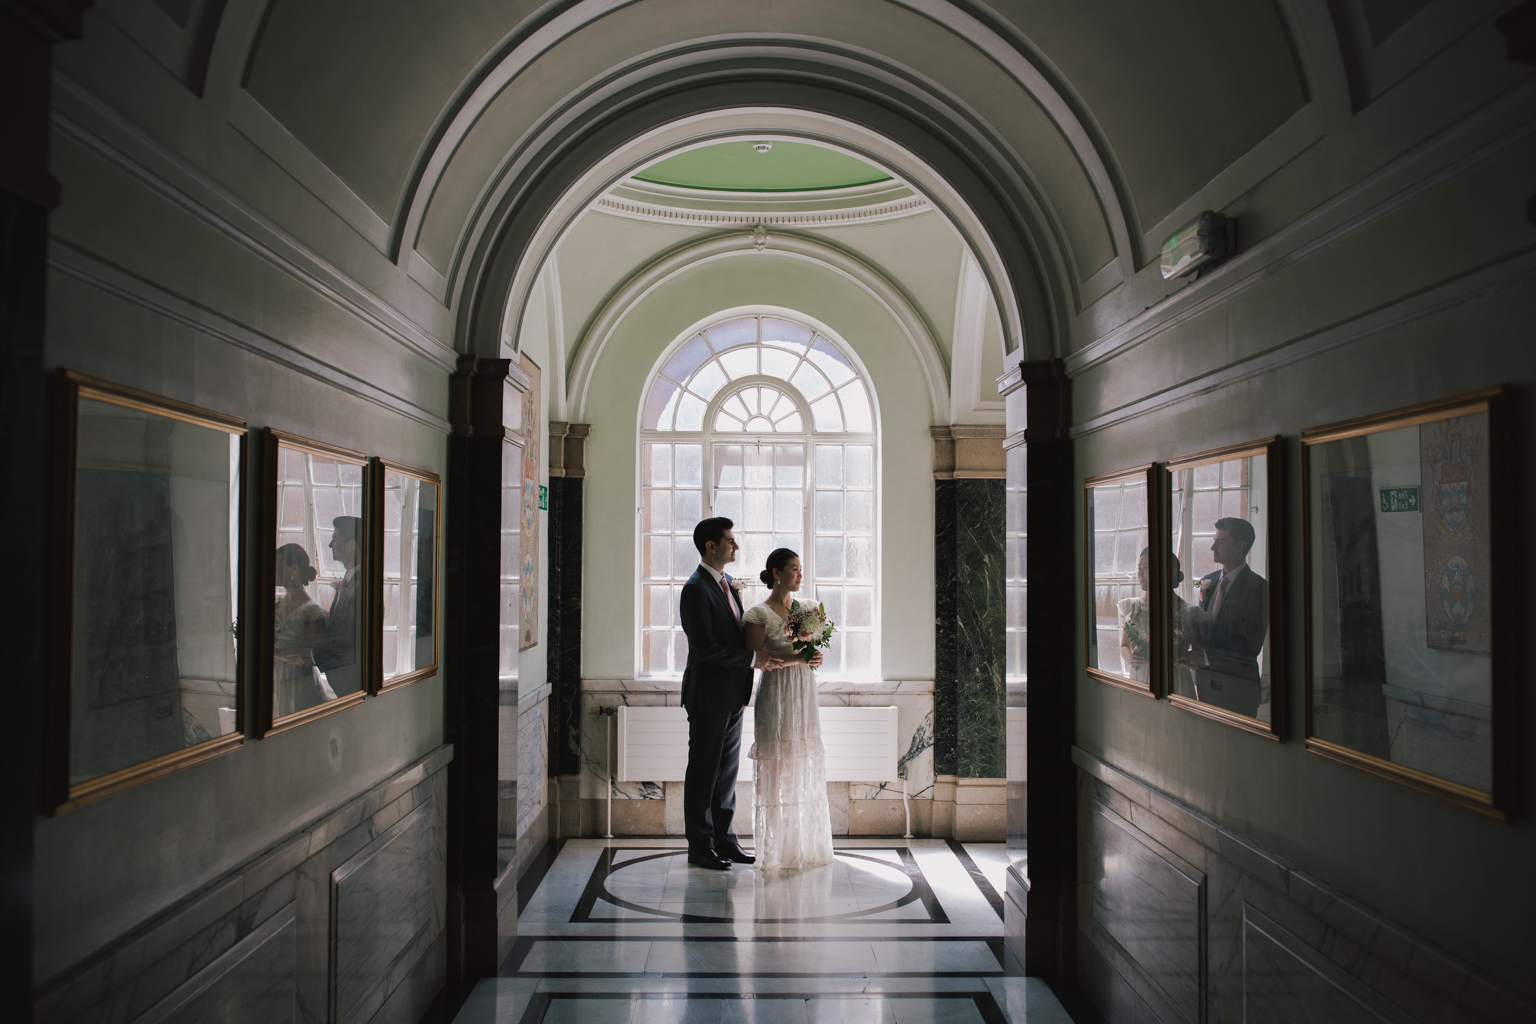 Bride and groom at Islington Town Hall Elopement ceremony